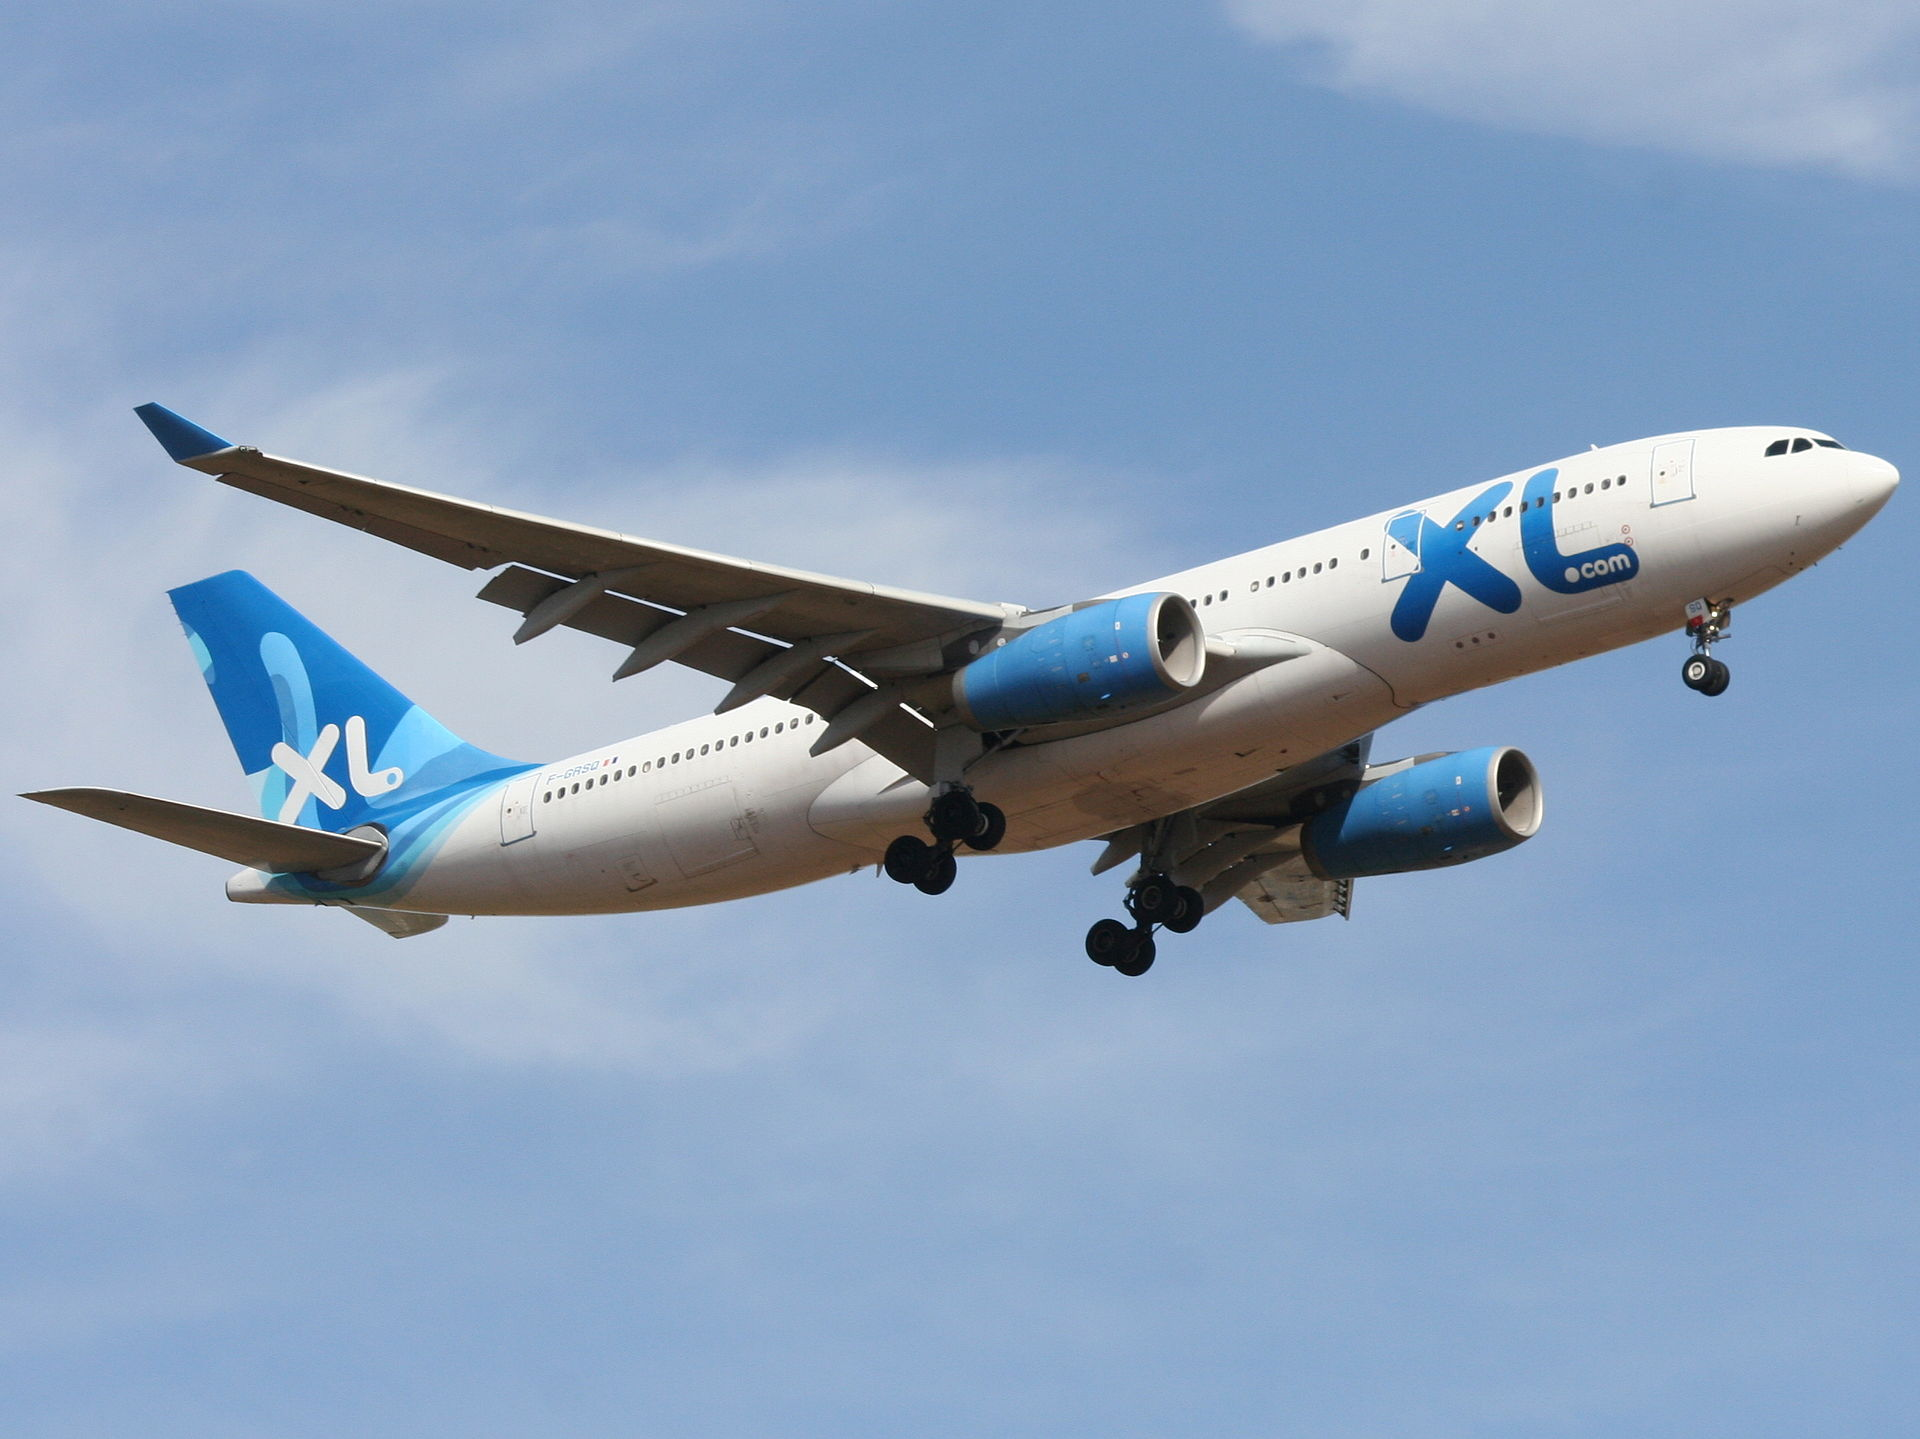 Xl airways france destinations wikipedia for Airbus a330 xl airways interieur